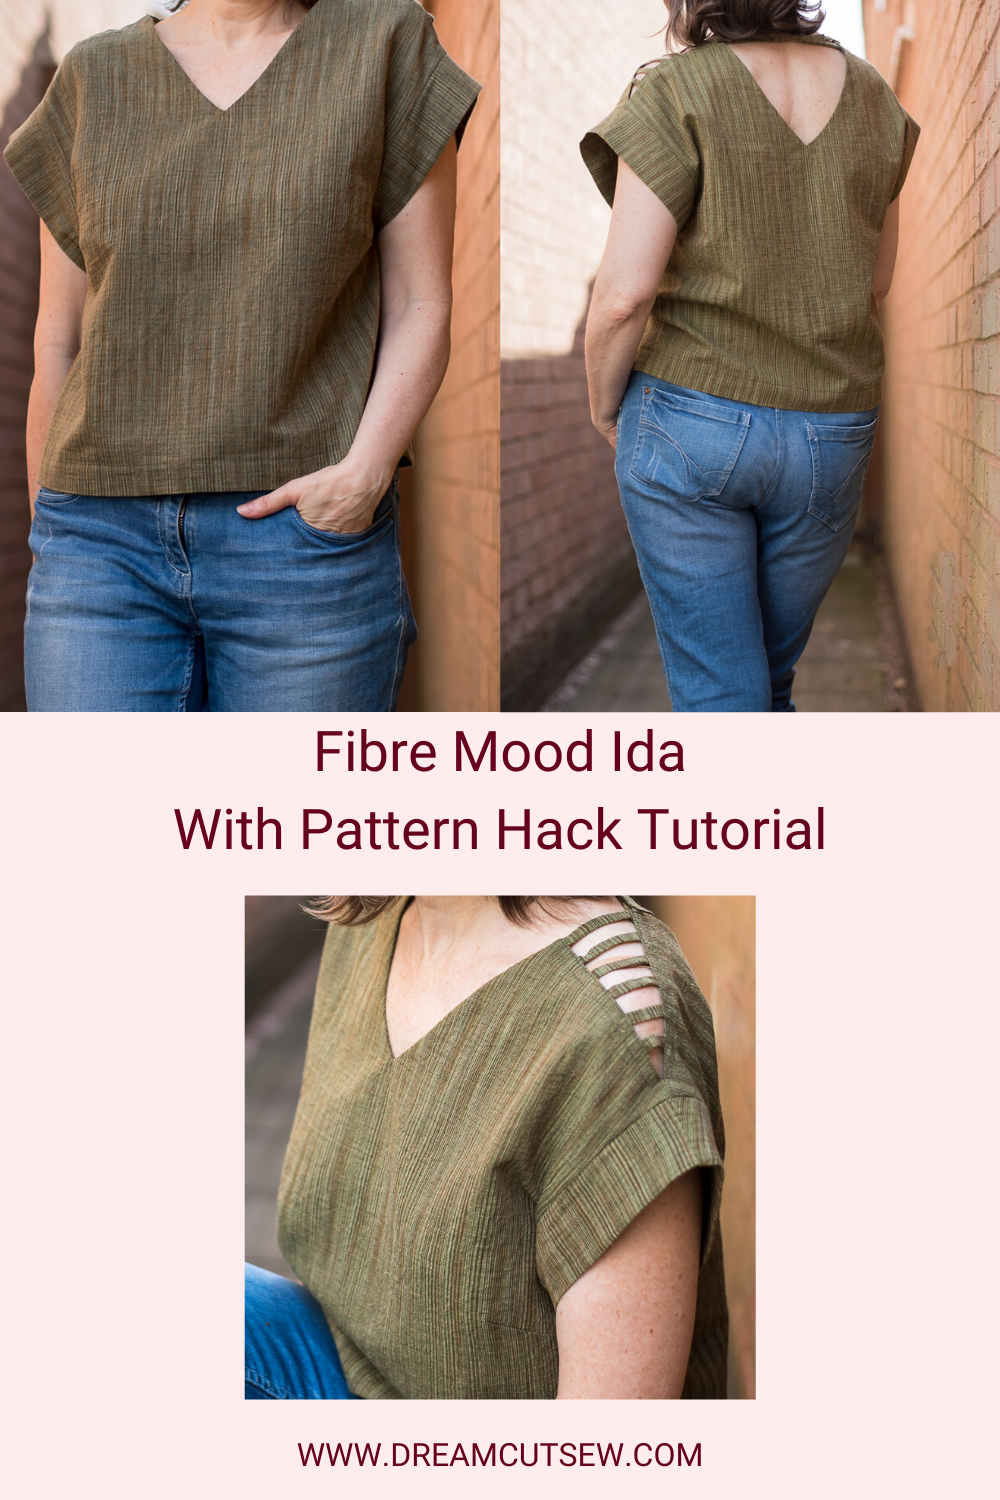 Fibre Mood Ida with added pattern hack. Pinterest Image